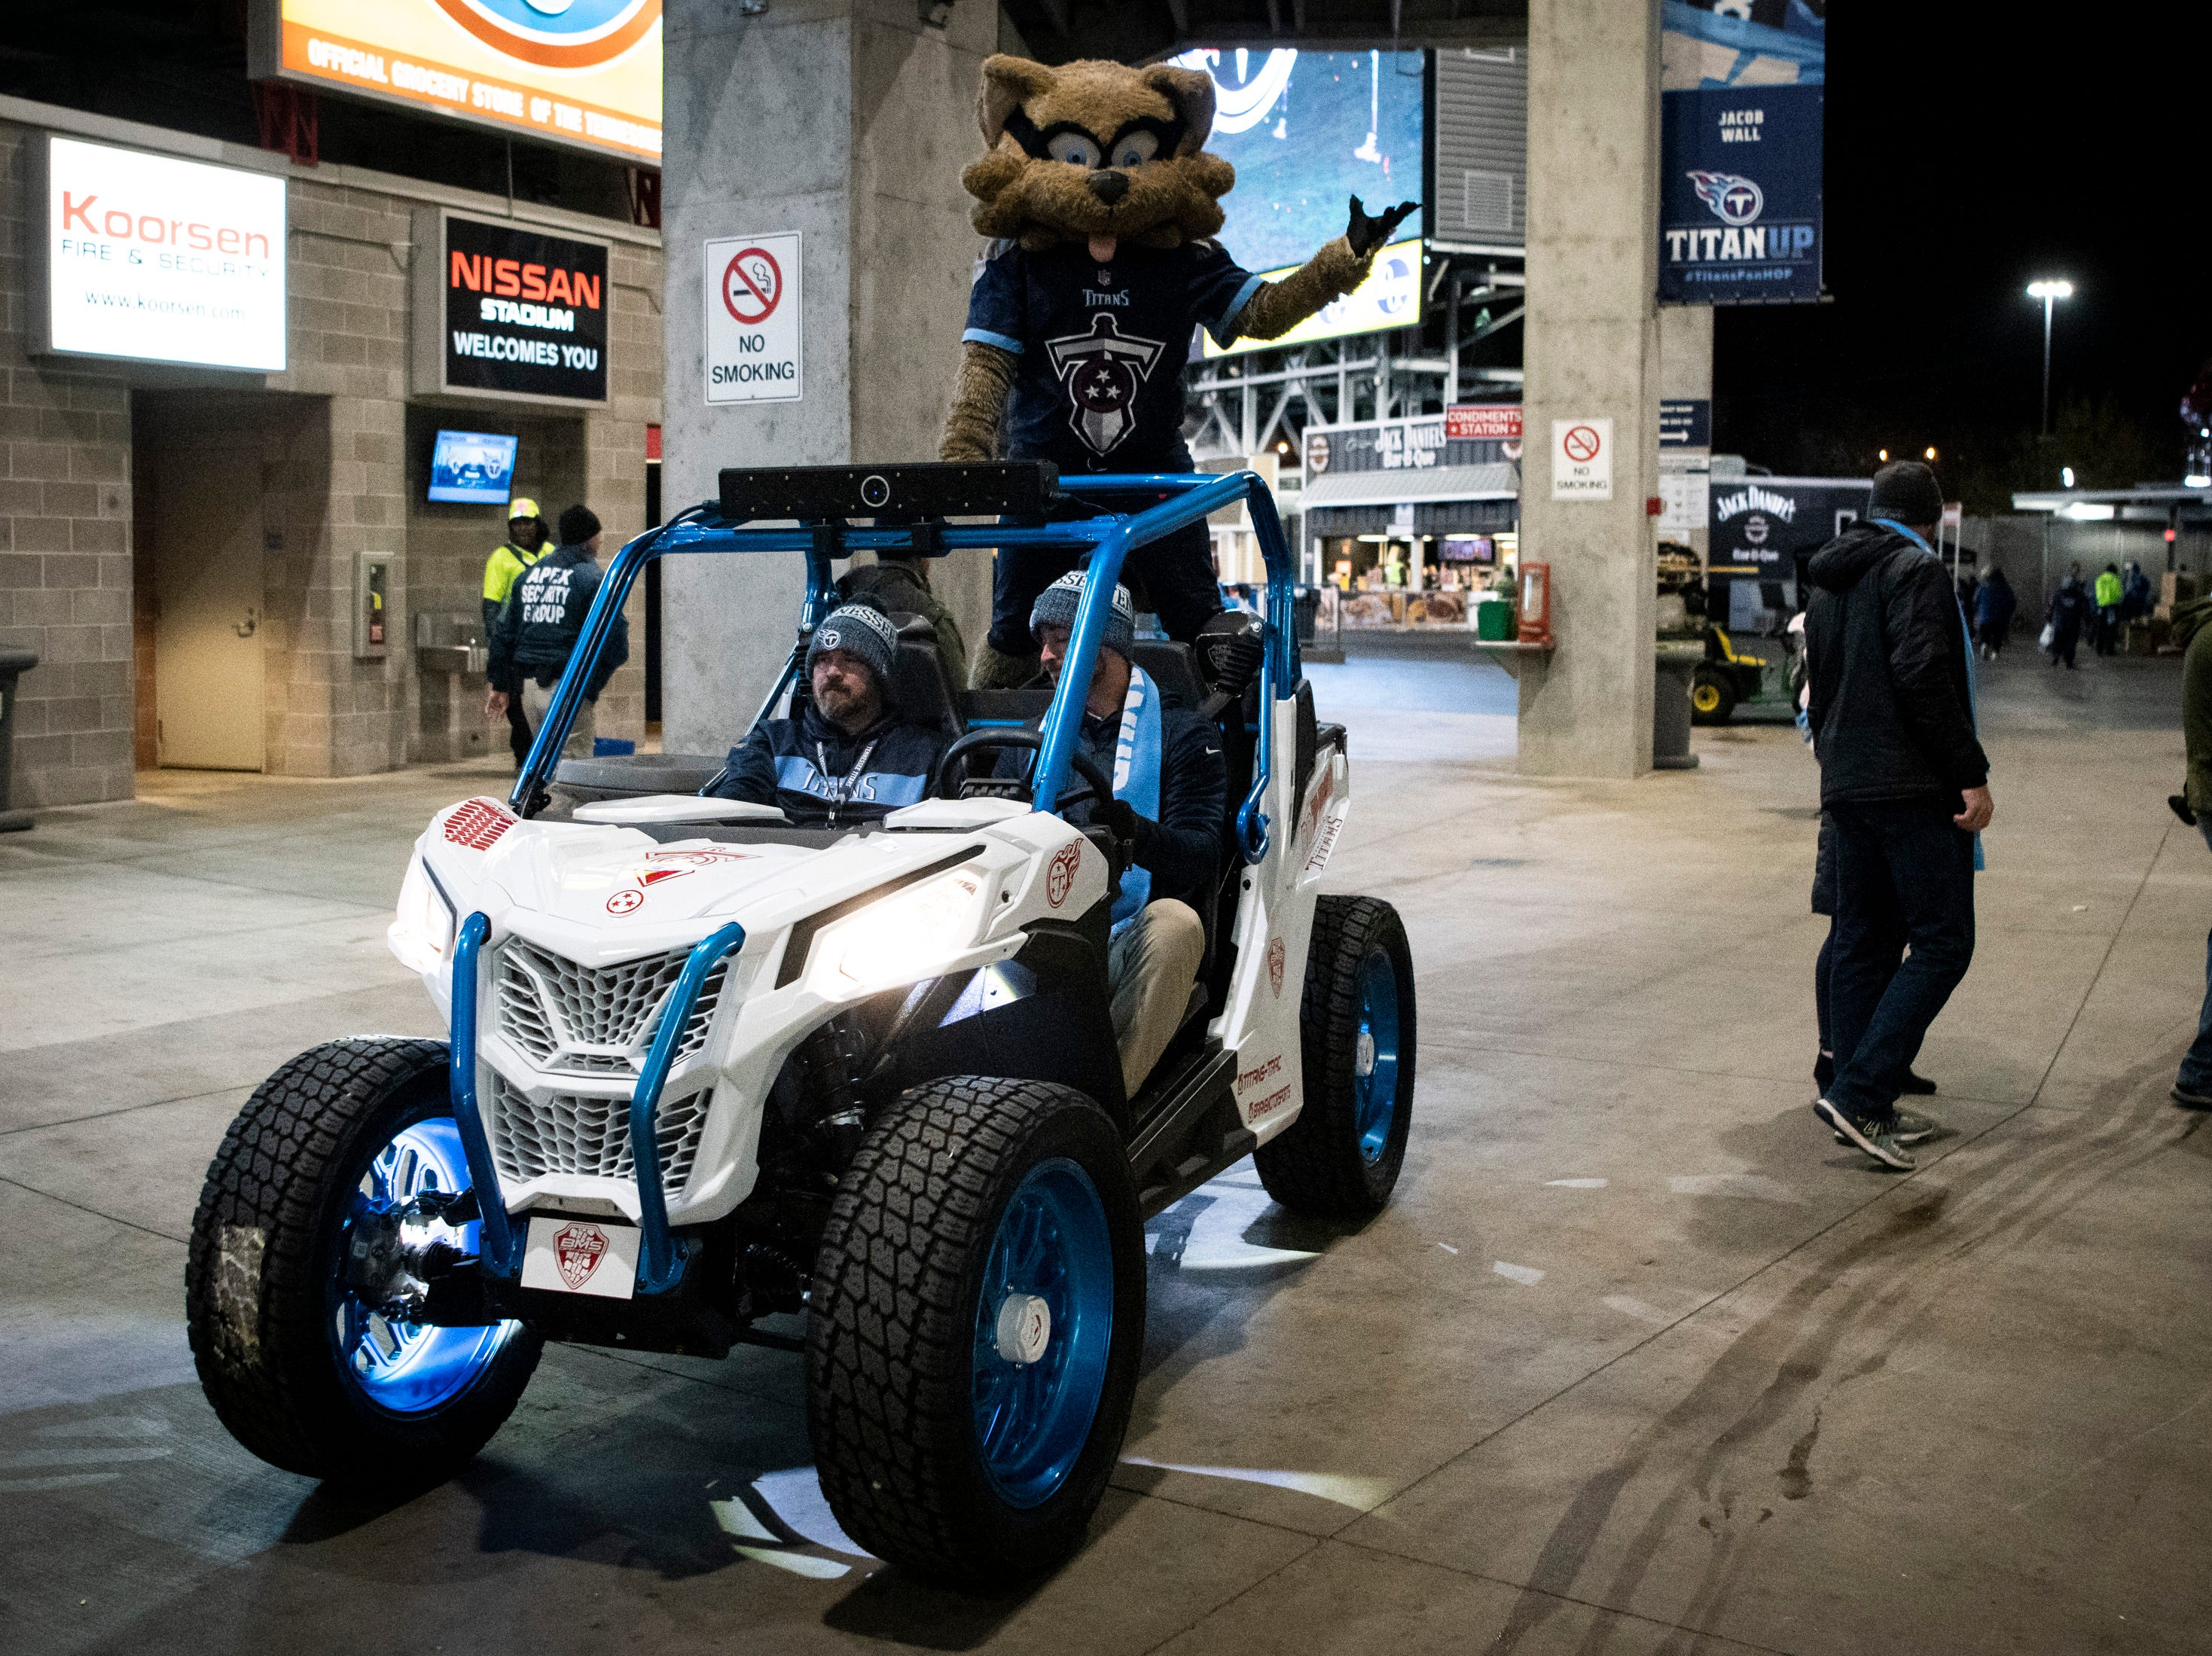 T-Rac greets fans before the game between the Tennessee Titans and the Jacksonville Jaguars at Nissan Stadium in Nashville, Tenn., Thursday, Dec. 6, 2018.